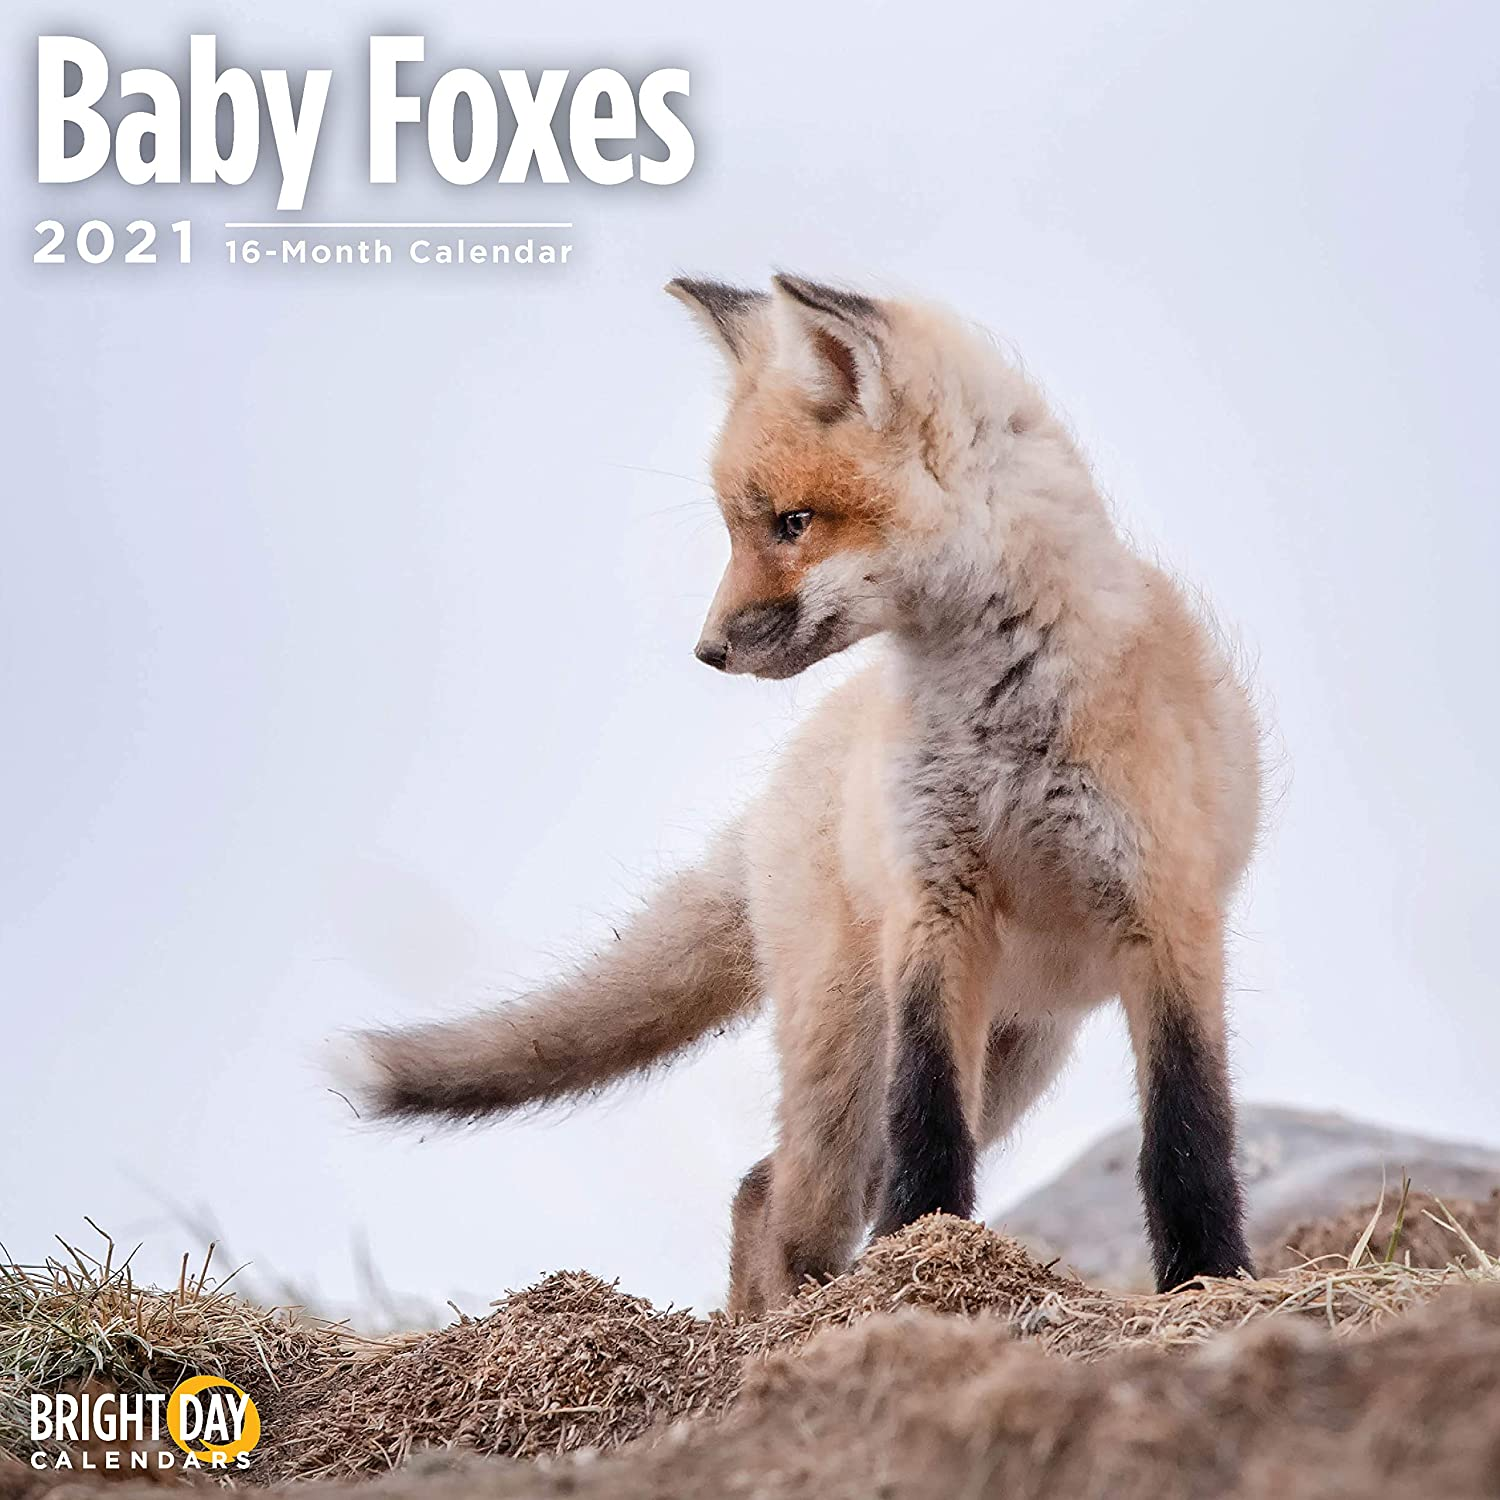 2021 Baby Foxes Wall Calendar by Bright Day, 12 x 12 Inch, Cute Wild Animal